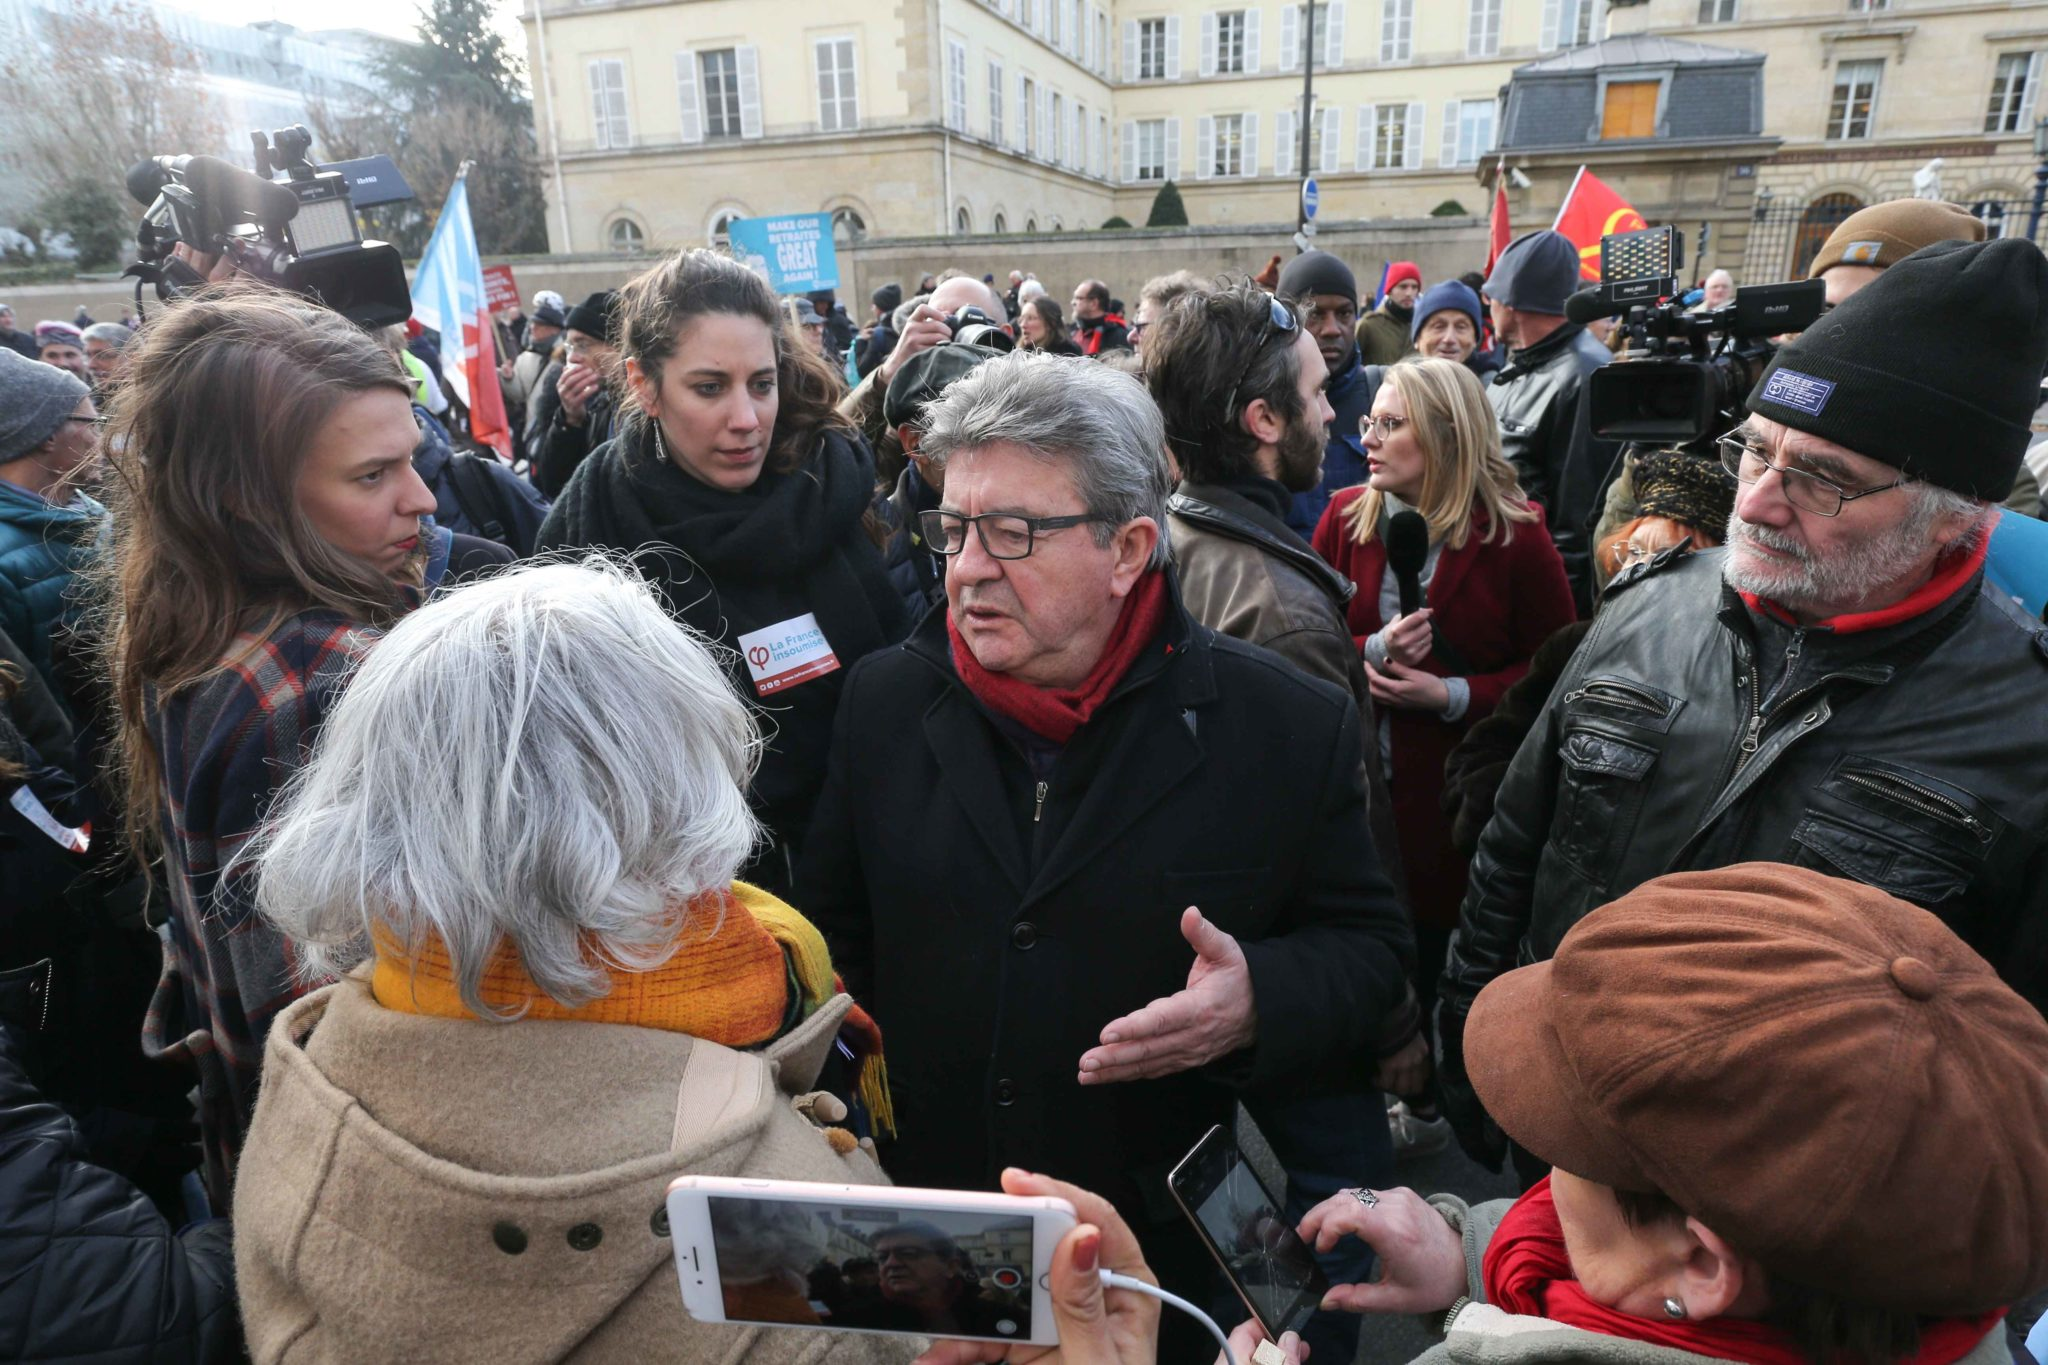 France's leftist party La France Insoumise (LFI) president Jean-Luc Melenchon (C) talks with demonstrators during a march in Paris on December 10, 2019 on a sixth day of a strike of public transport operators SNCF and RATP employees over French government'